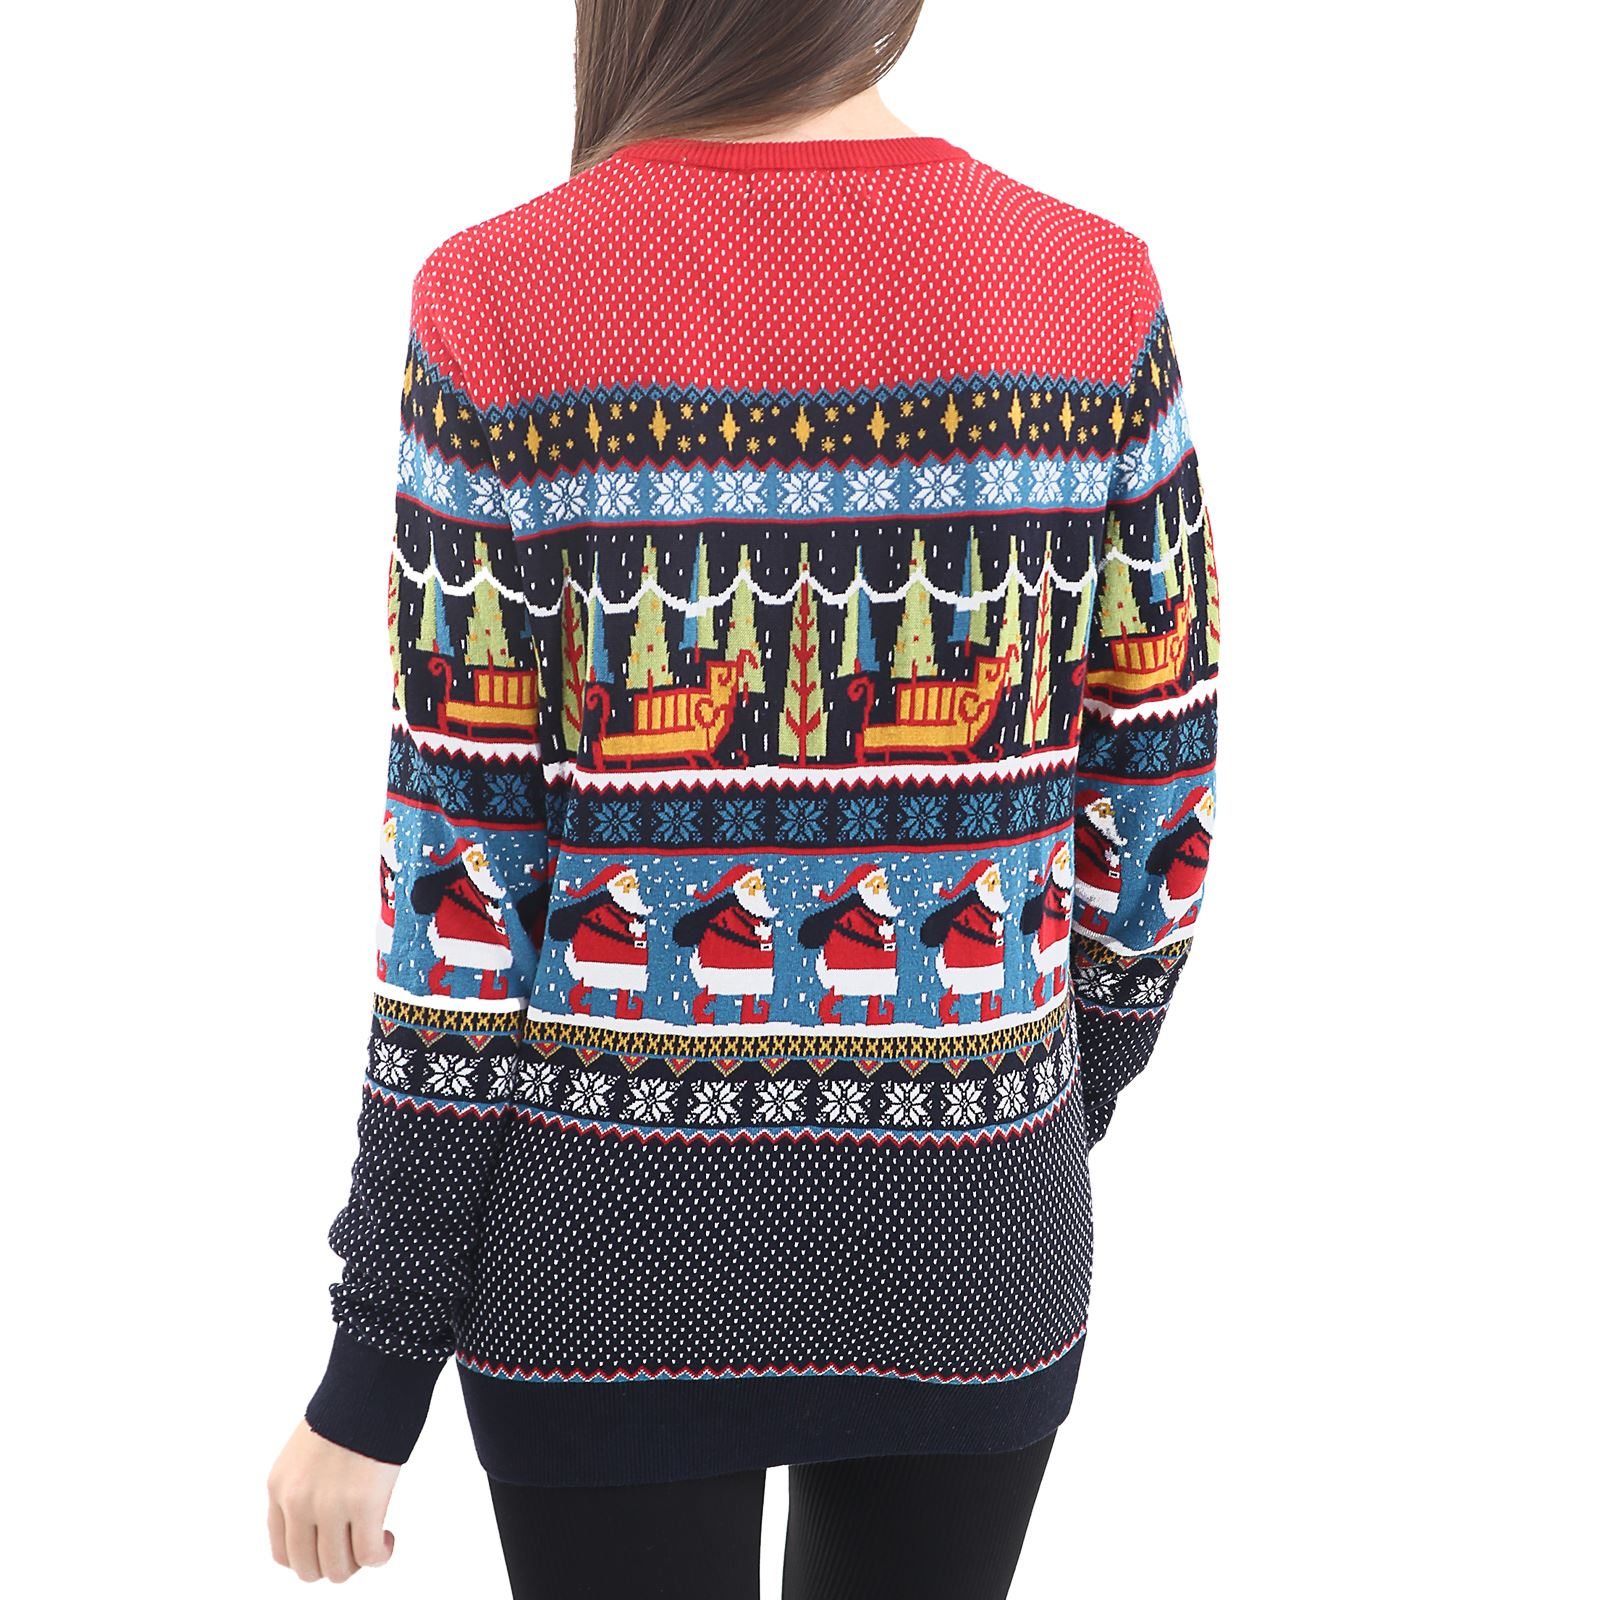 Mens-Ladies-Ex-Store-Matching-Christmas-Sweater-Jumper-Sweatshirt-Xmas-His-Hers thumbnail 25